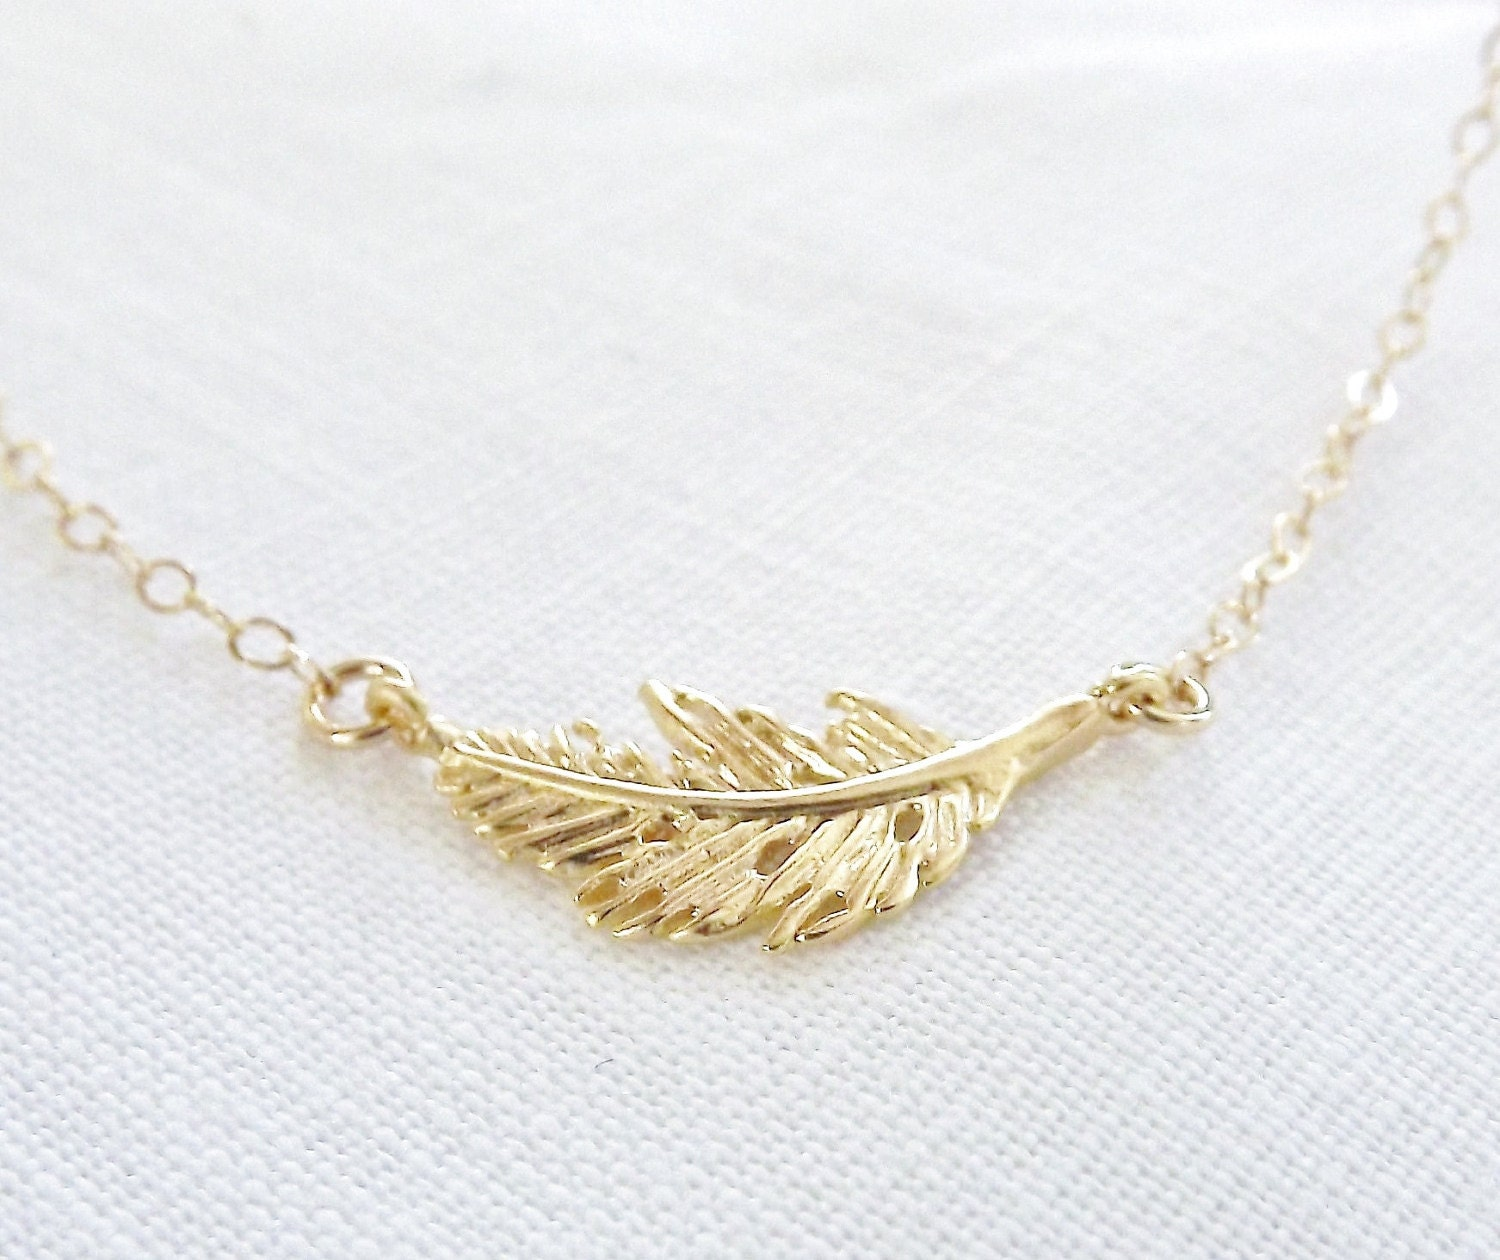 tiny gold feather necklace sideways necklace 14k gold